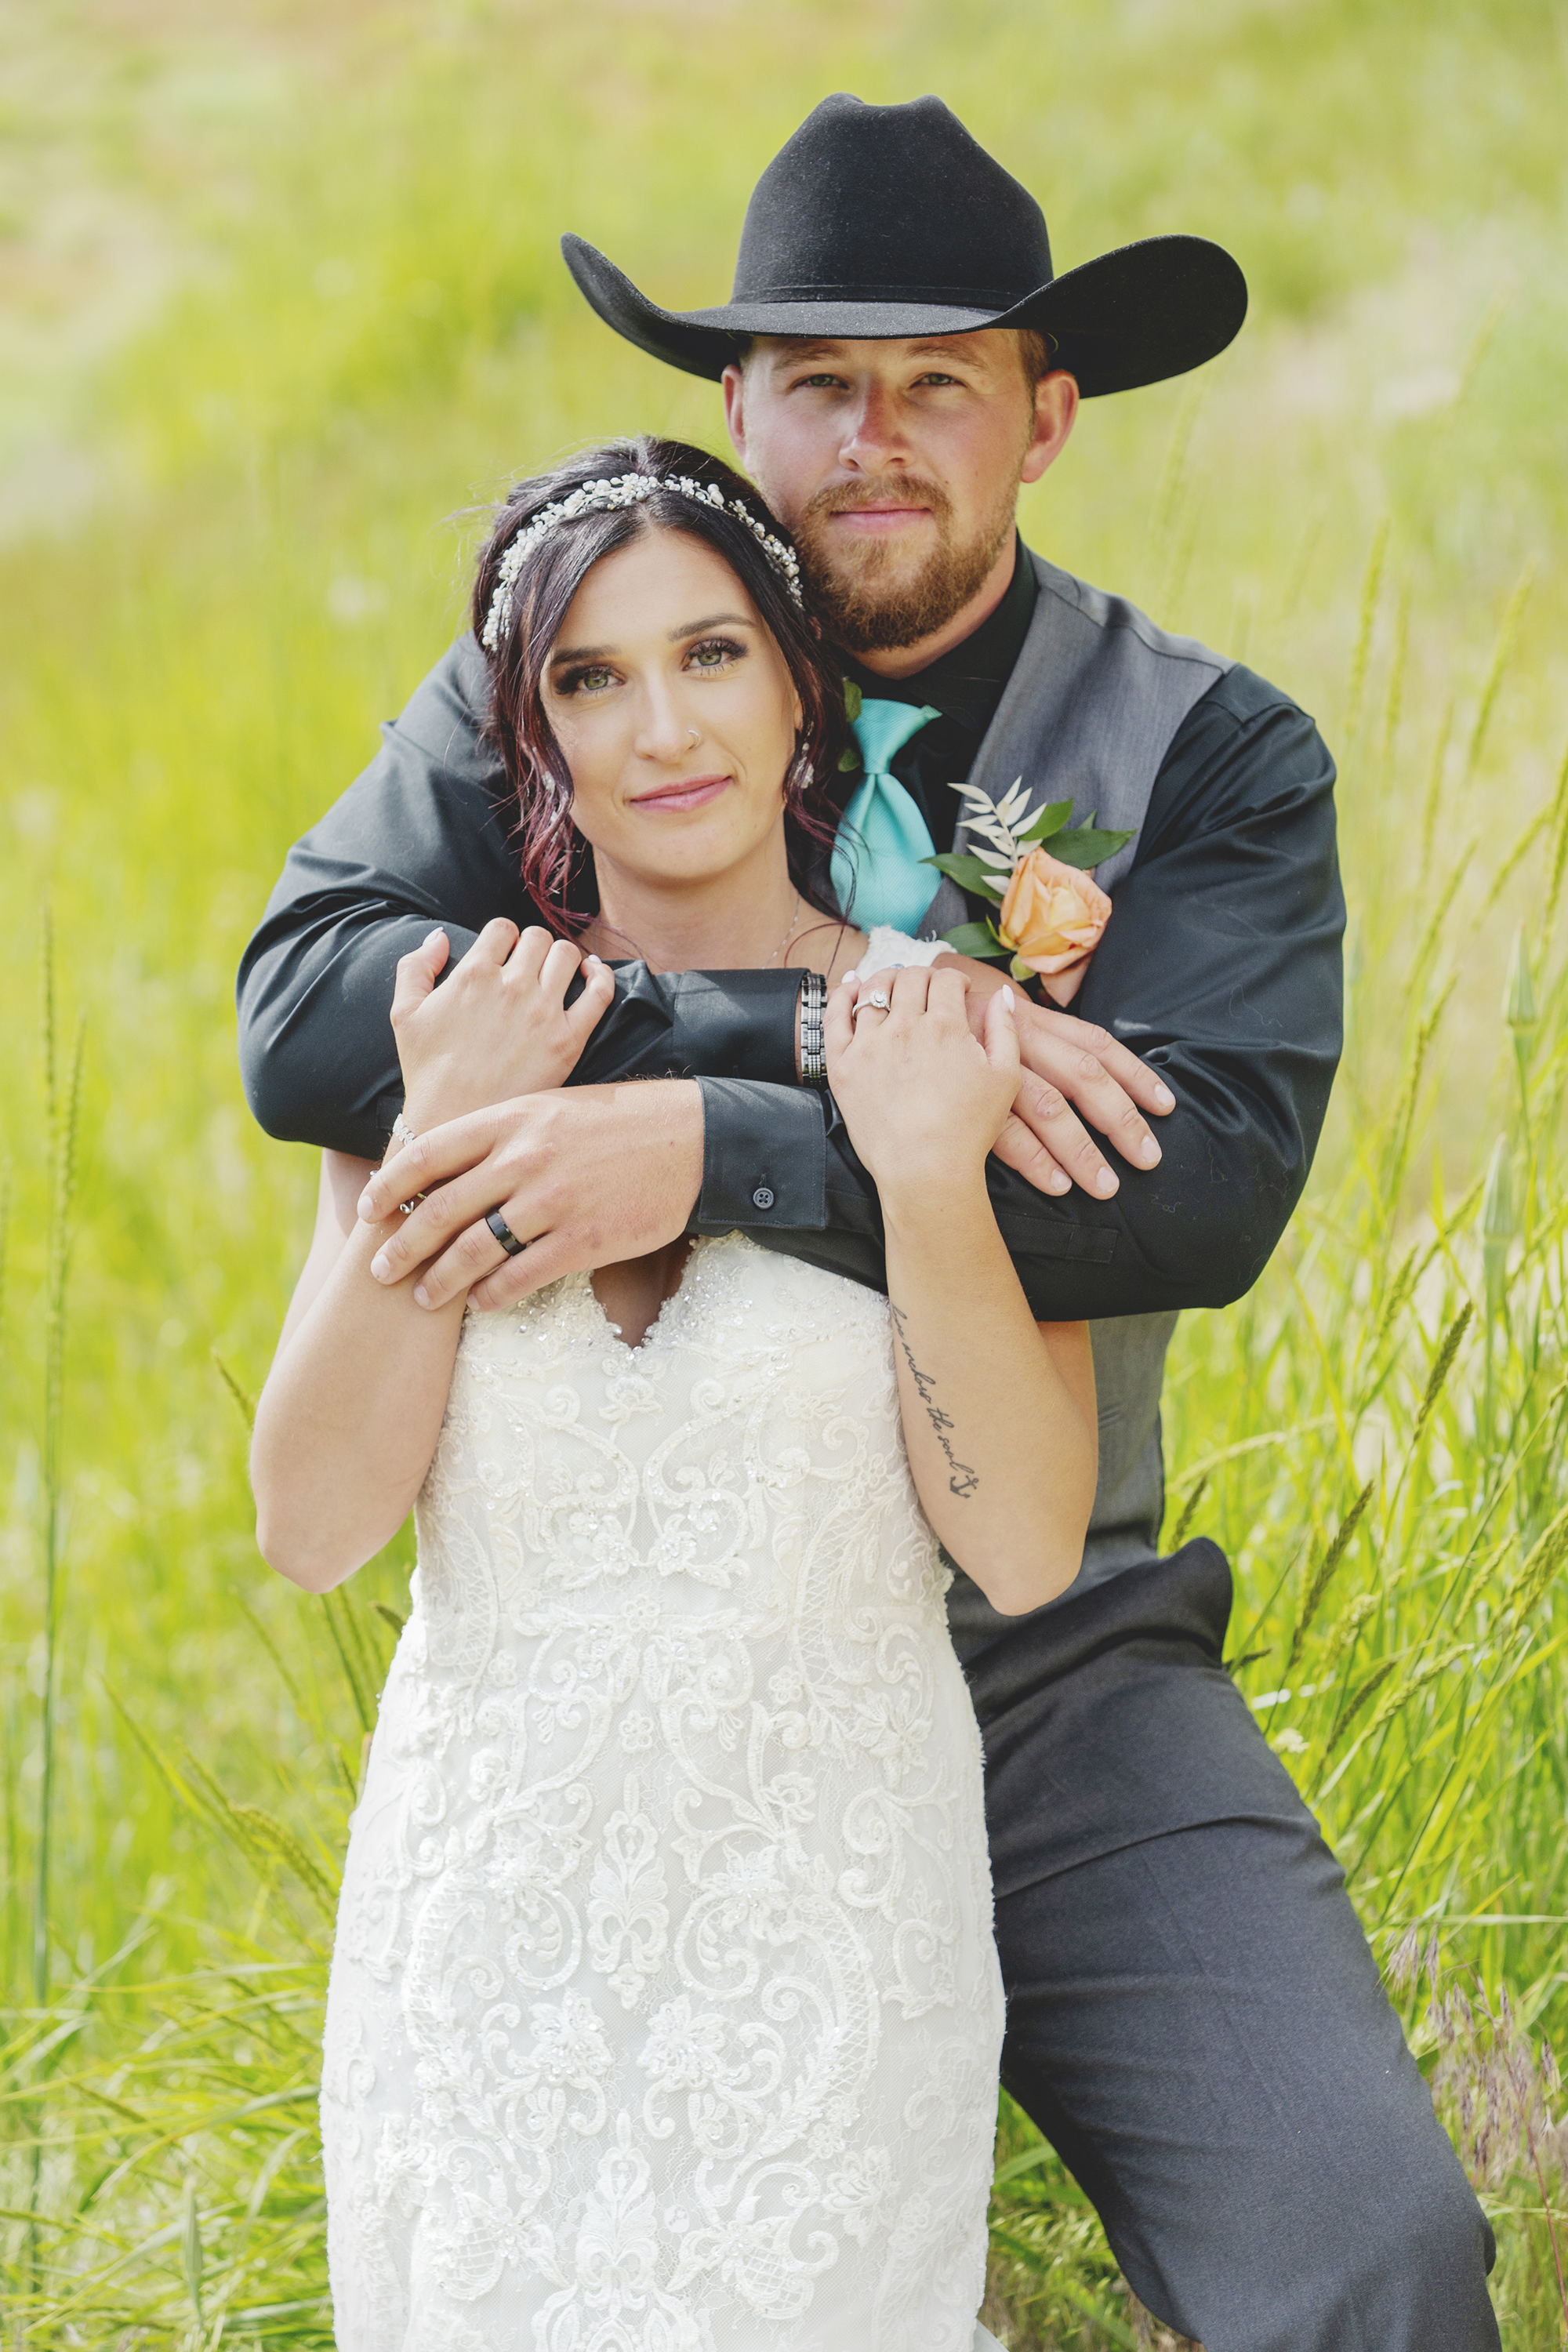 Bride and Groom in Cowboy Hat